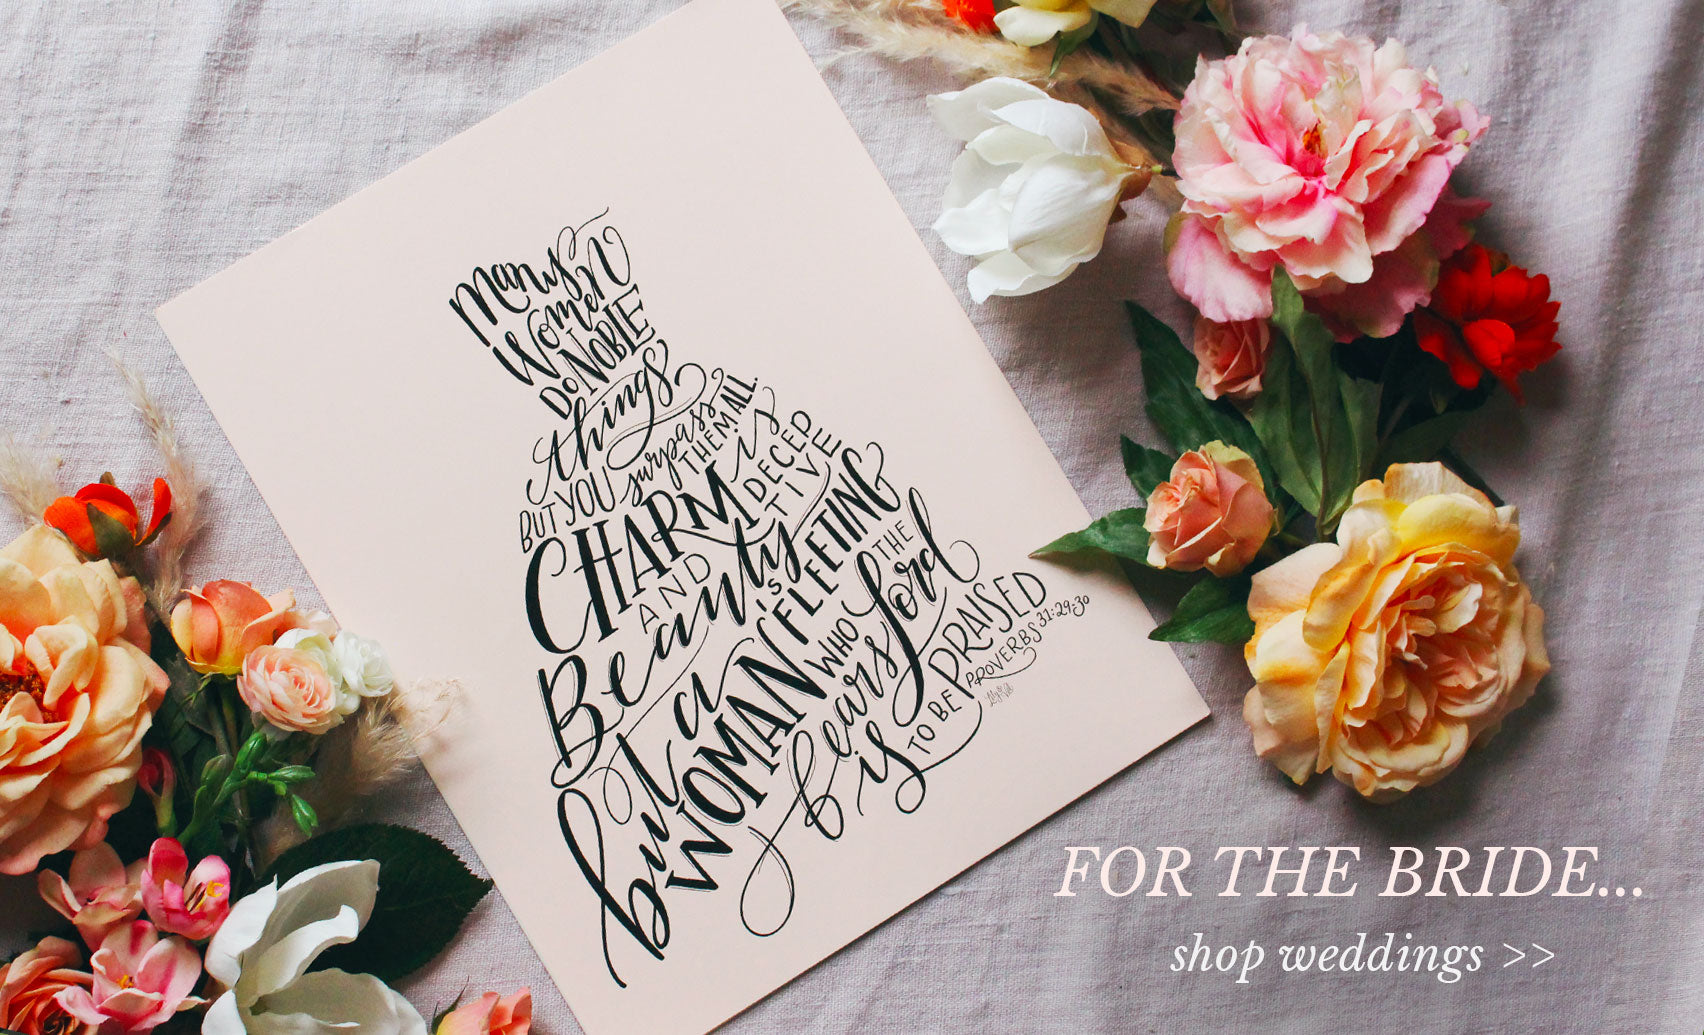 To Have & To Hold - Lily & Val Wedding Vow Books - The L&V Wedding Collection is Here!